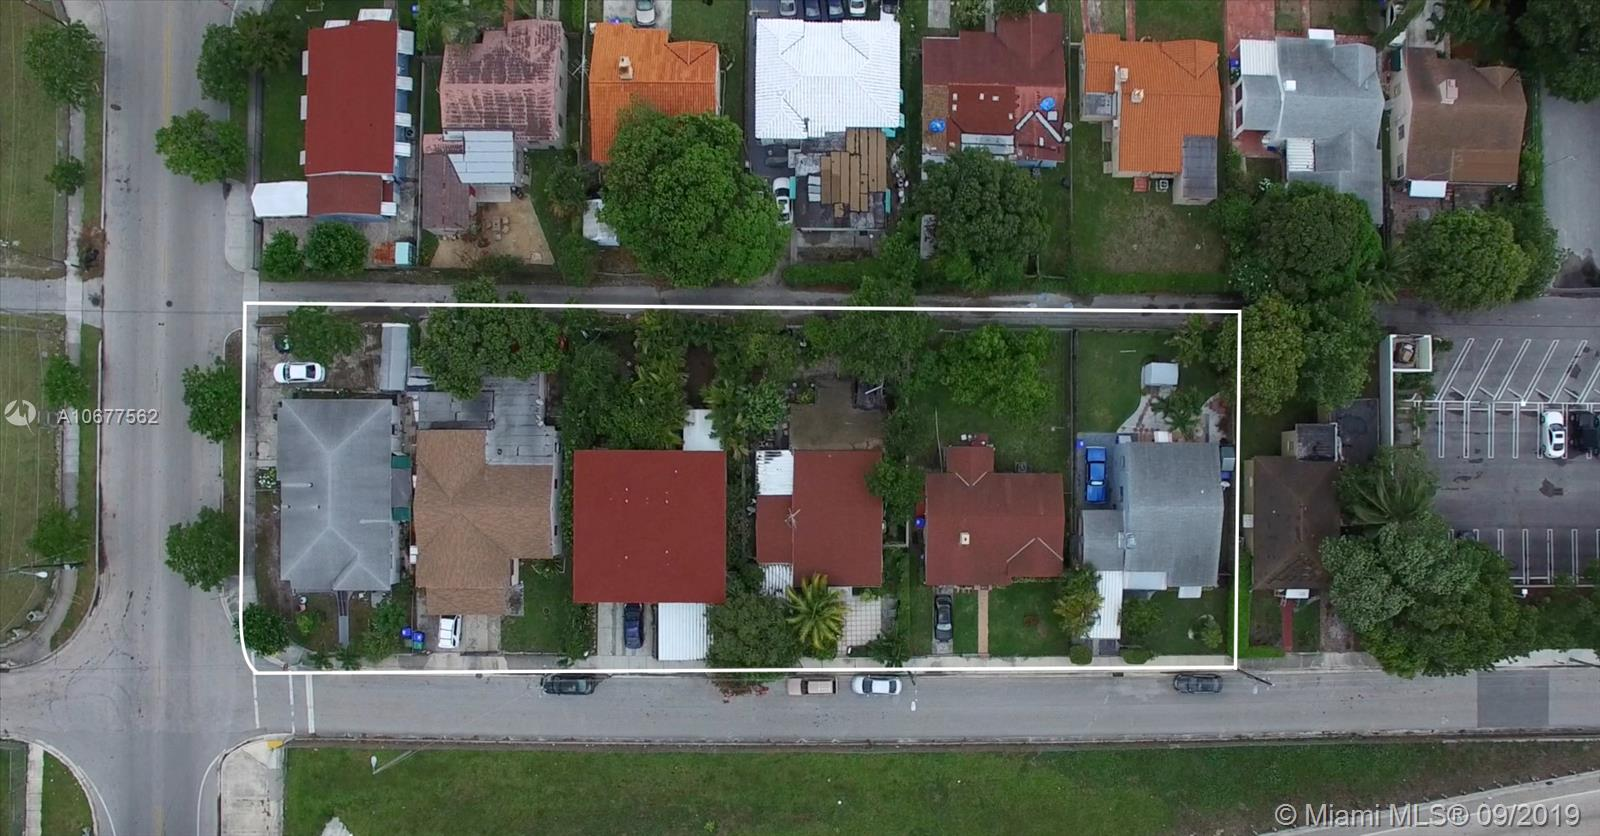 53 NW 38 Street  For Sale A10677562, FL